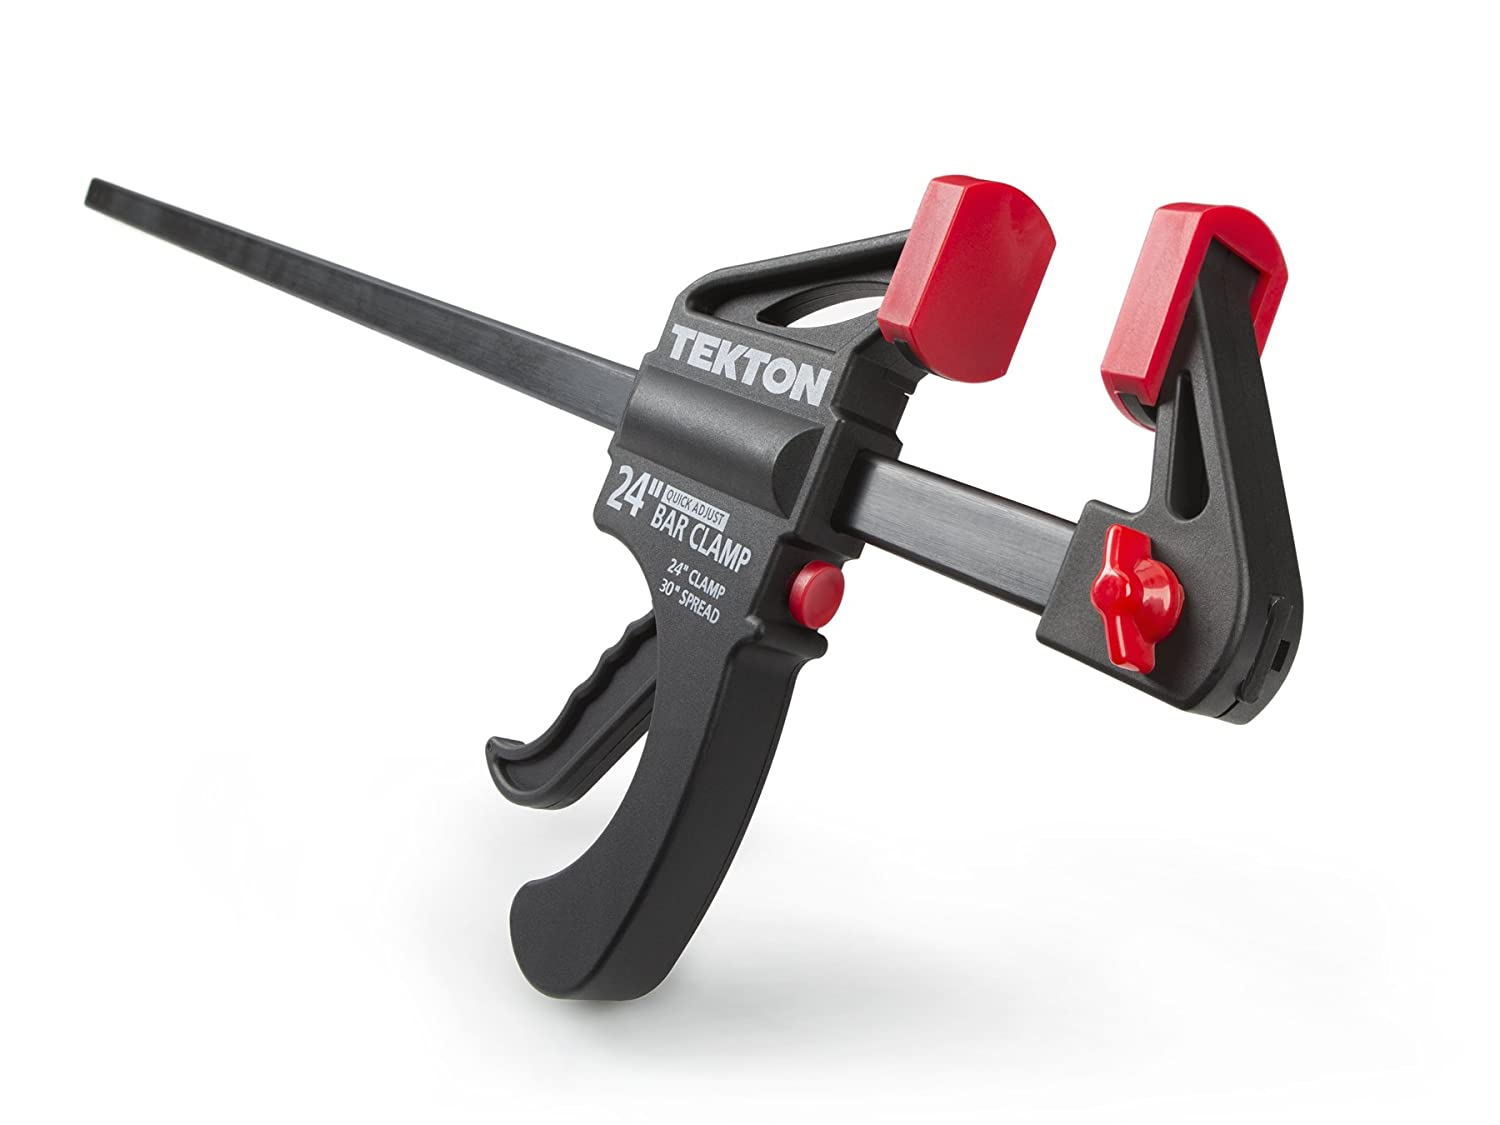 TEKTON 24-Inch x 2-1/2-Inch Ratchet Bar Clamp and 30-Inch Spreader | 39184